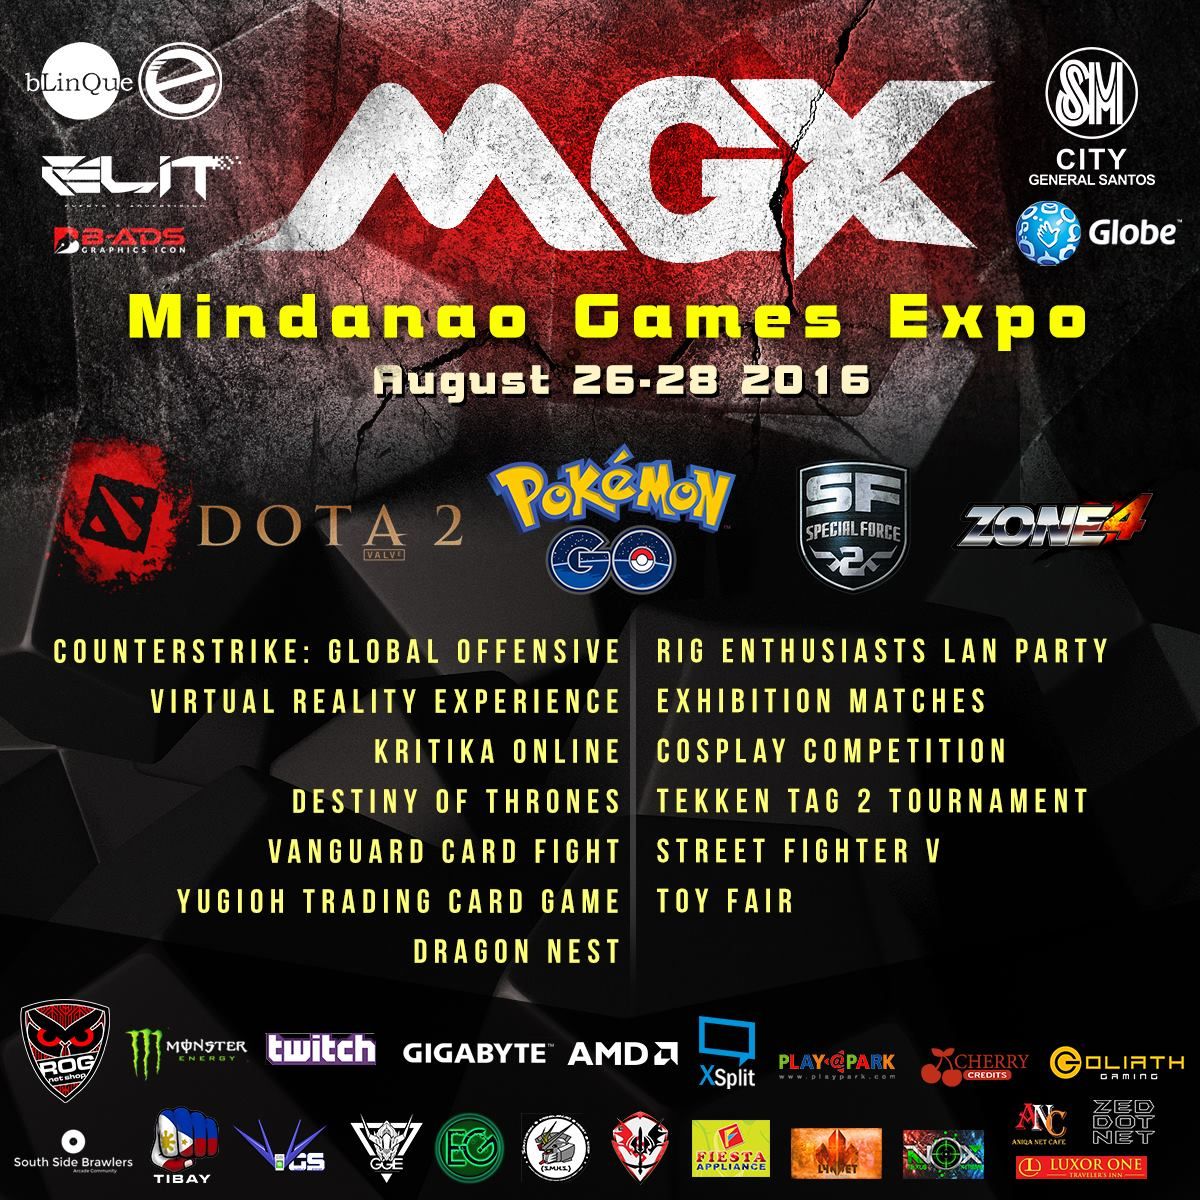 SM City Gen. Santos powers up Mindanao Games Expo this weekend